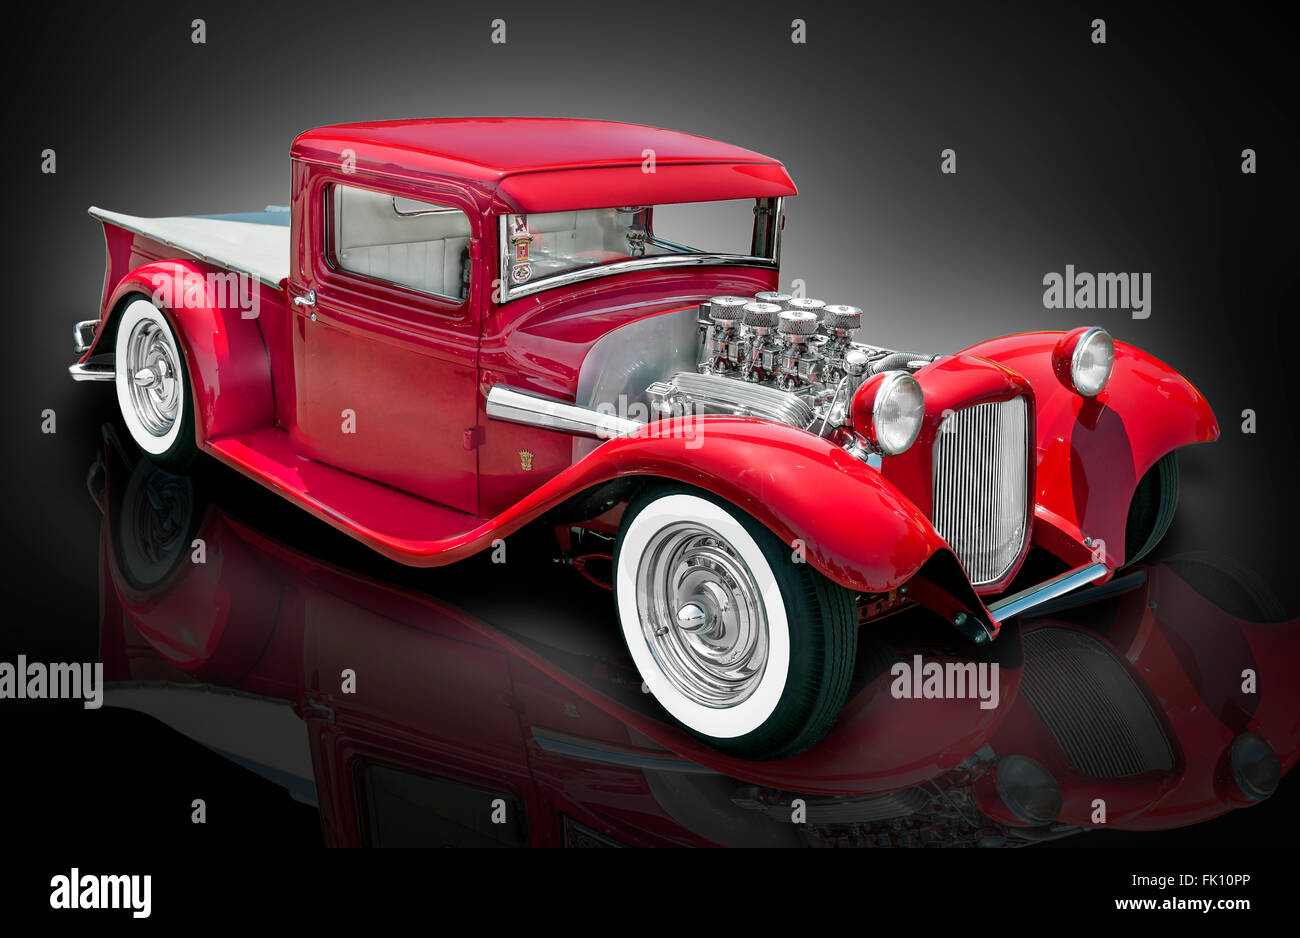 Ford Pickup Stock Photos Images Alamy 1951 1952 Hot Rod Truck Pics A Studio Style Photo Of 1934 Custom Image